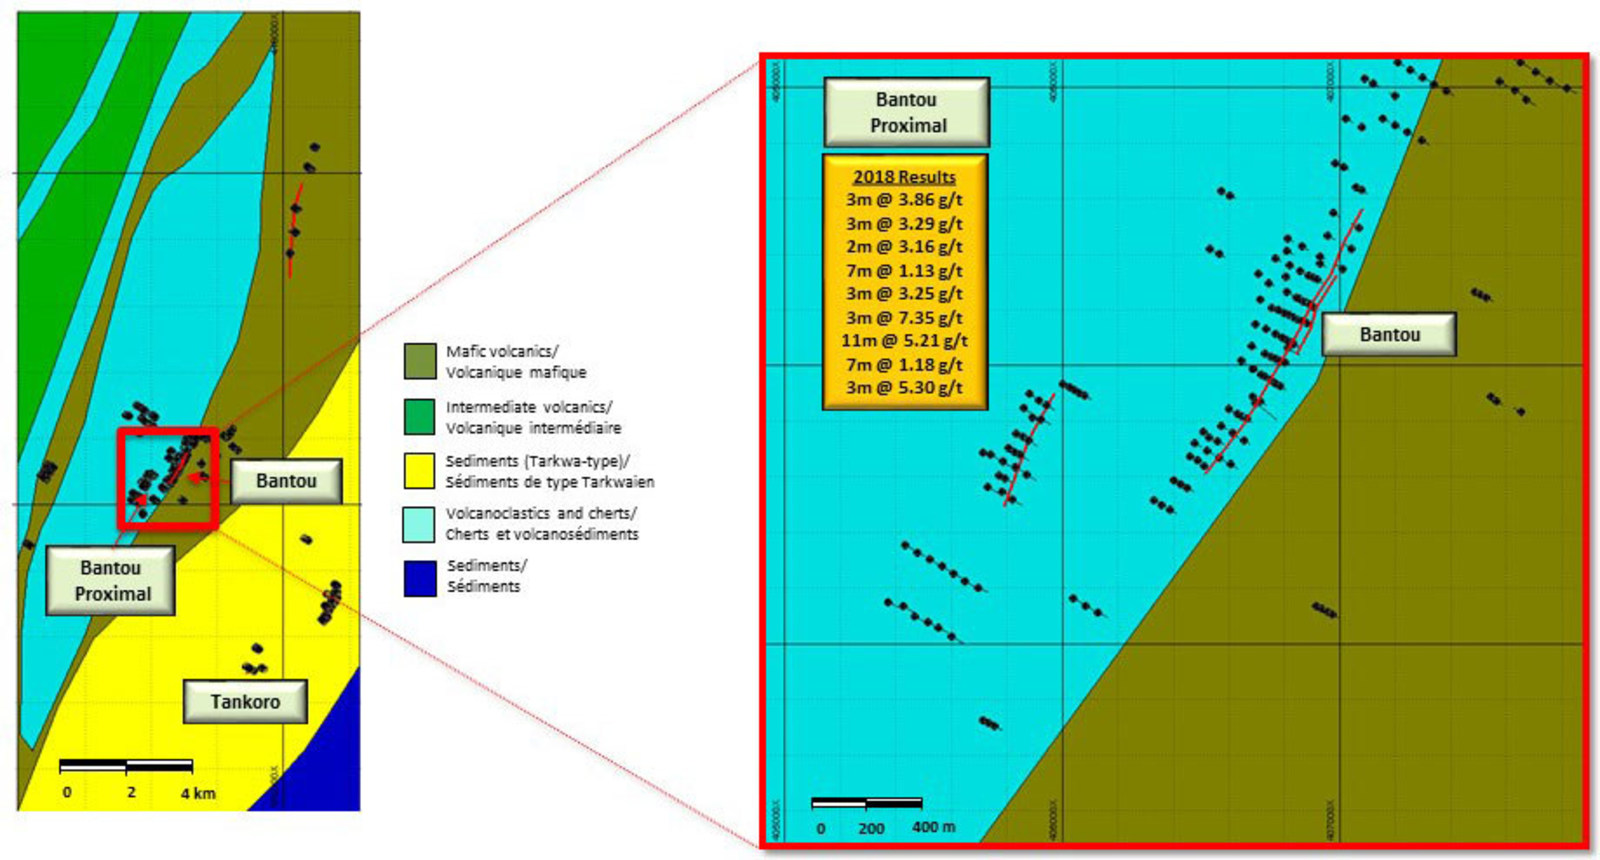 Figure 3. Location of Bantou and Bantou Proximal Drilling